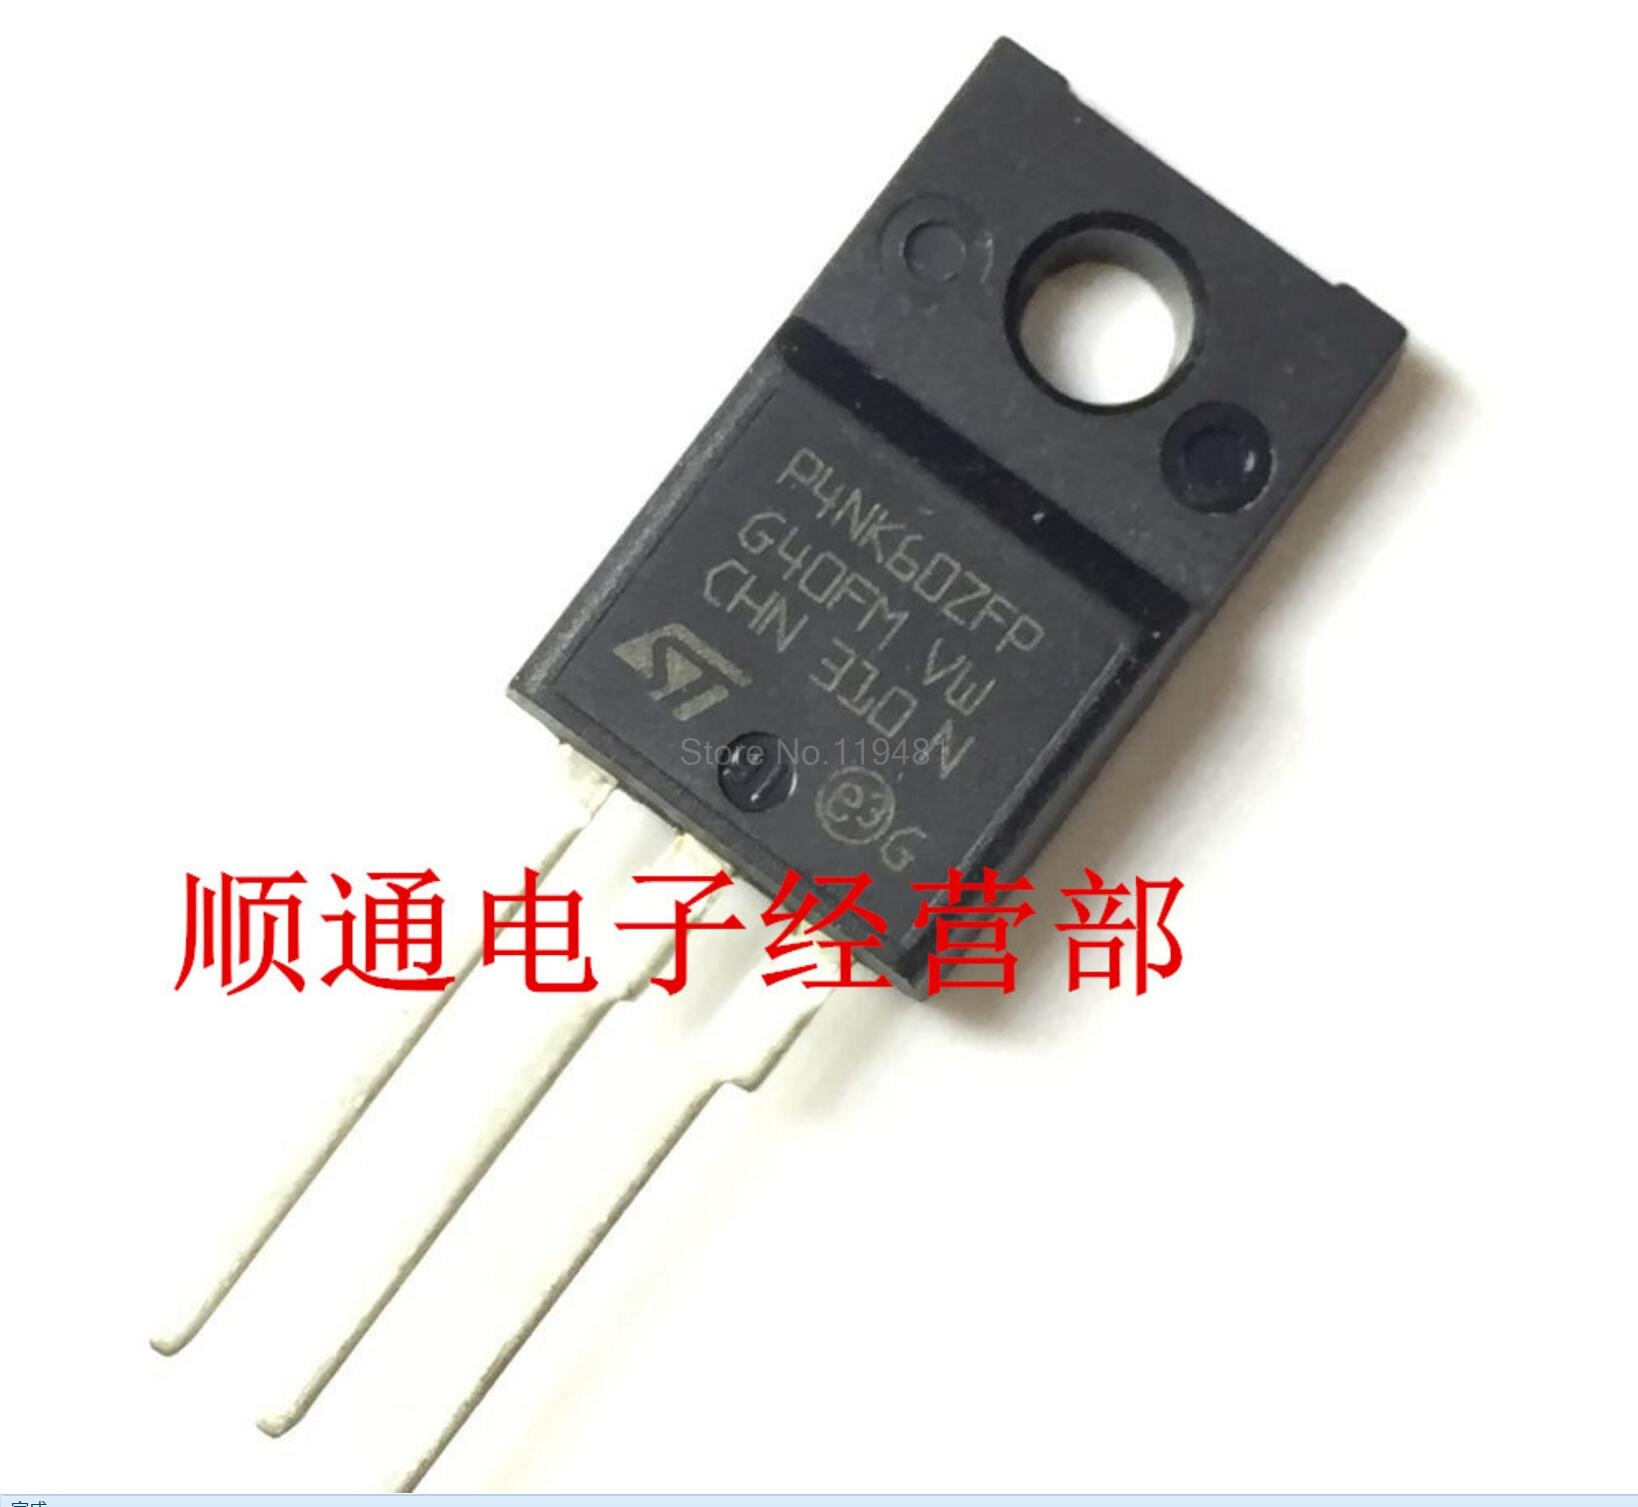 Stp4nk To 220f Trans Mosfet N Ch 600v 4a 3 Pin3 Tab 220fp Lm358 358 Ic Dual Operational Amplifiers Dip8 Integrated Circuit Stp4nk60zfp In Circuits From Electronic Components Supplies On